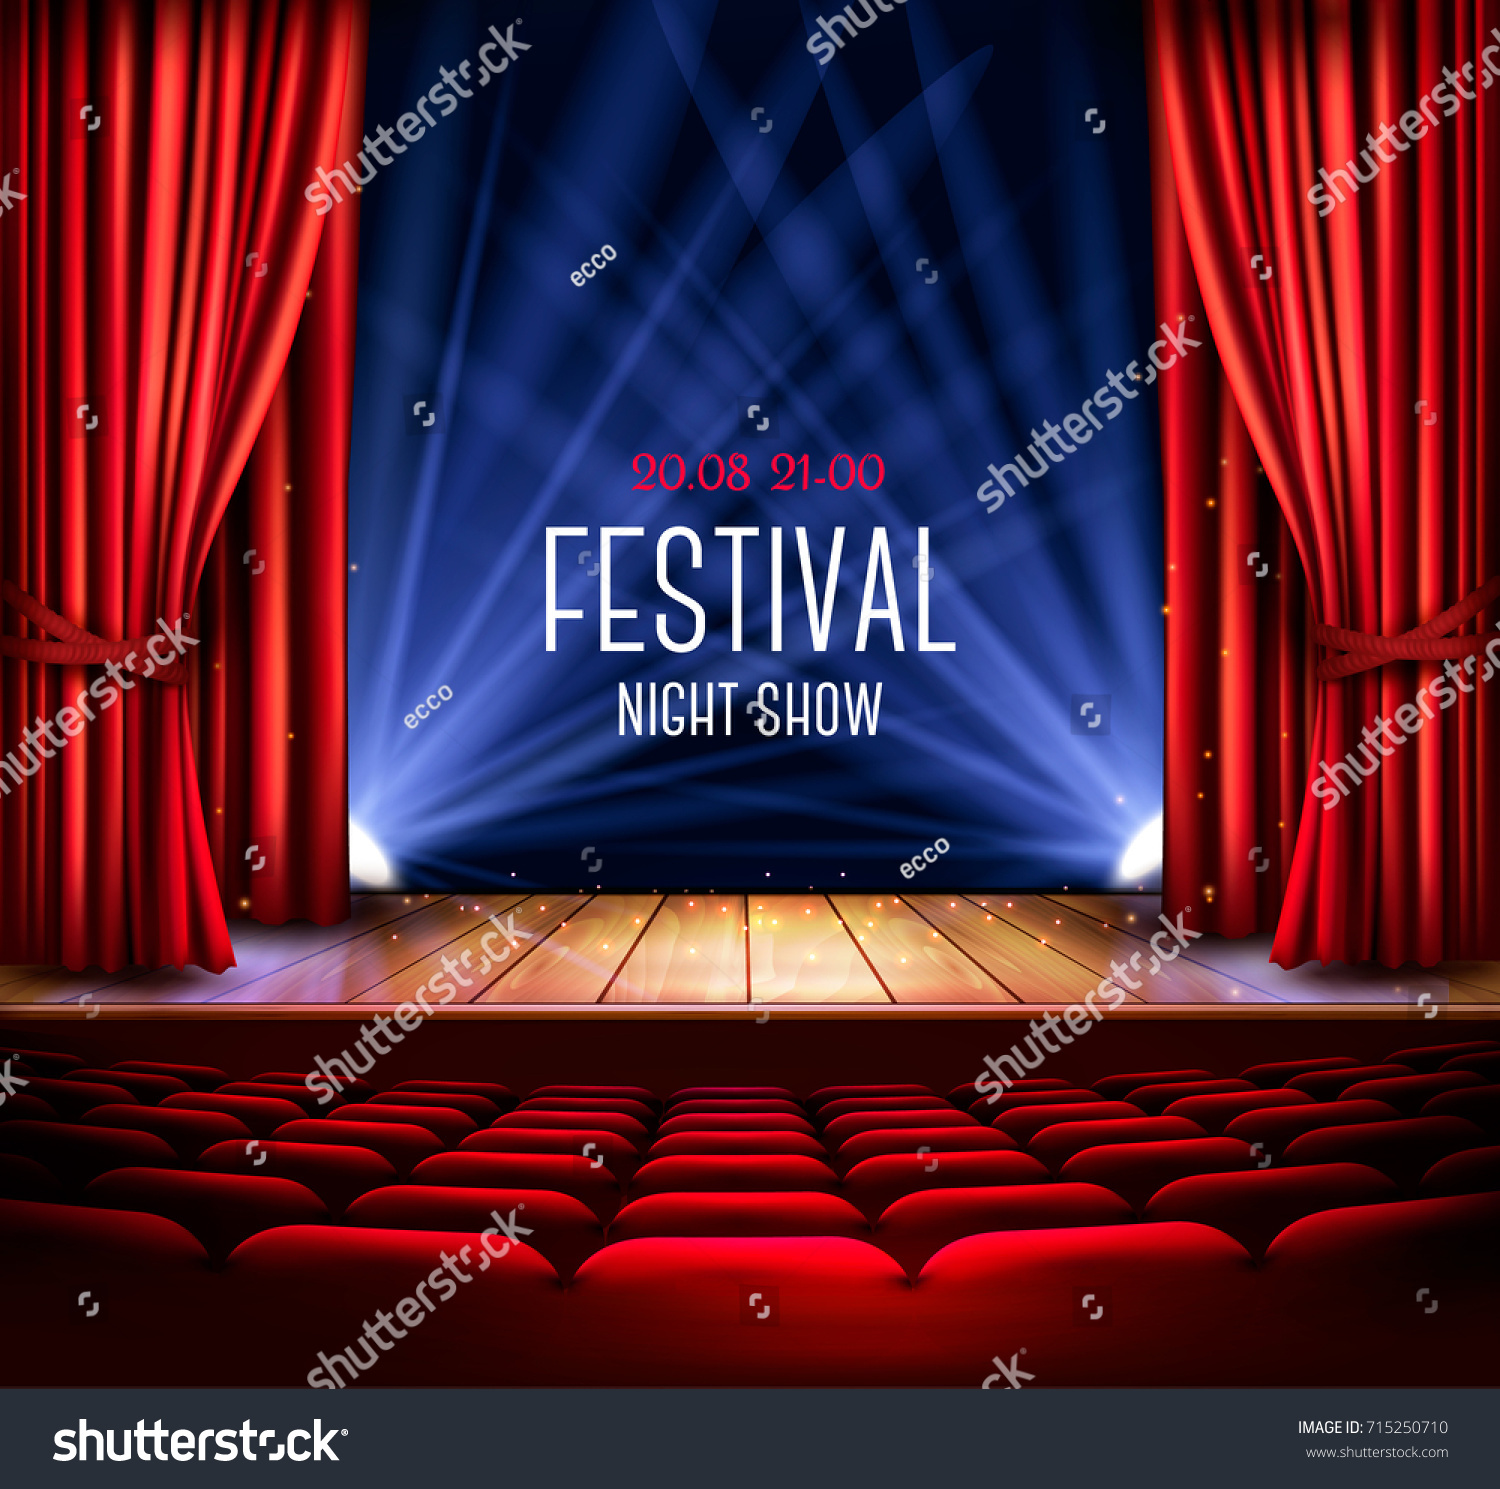 Theater Stage Red Curtain Spotlight Festival Stock Vector 715250710 ...